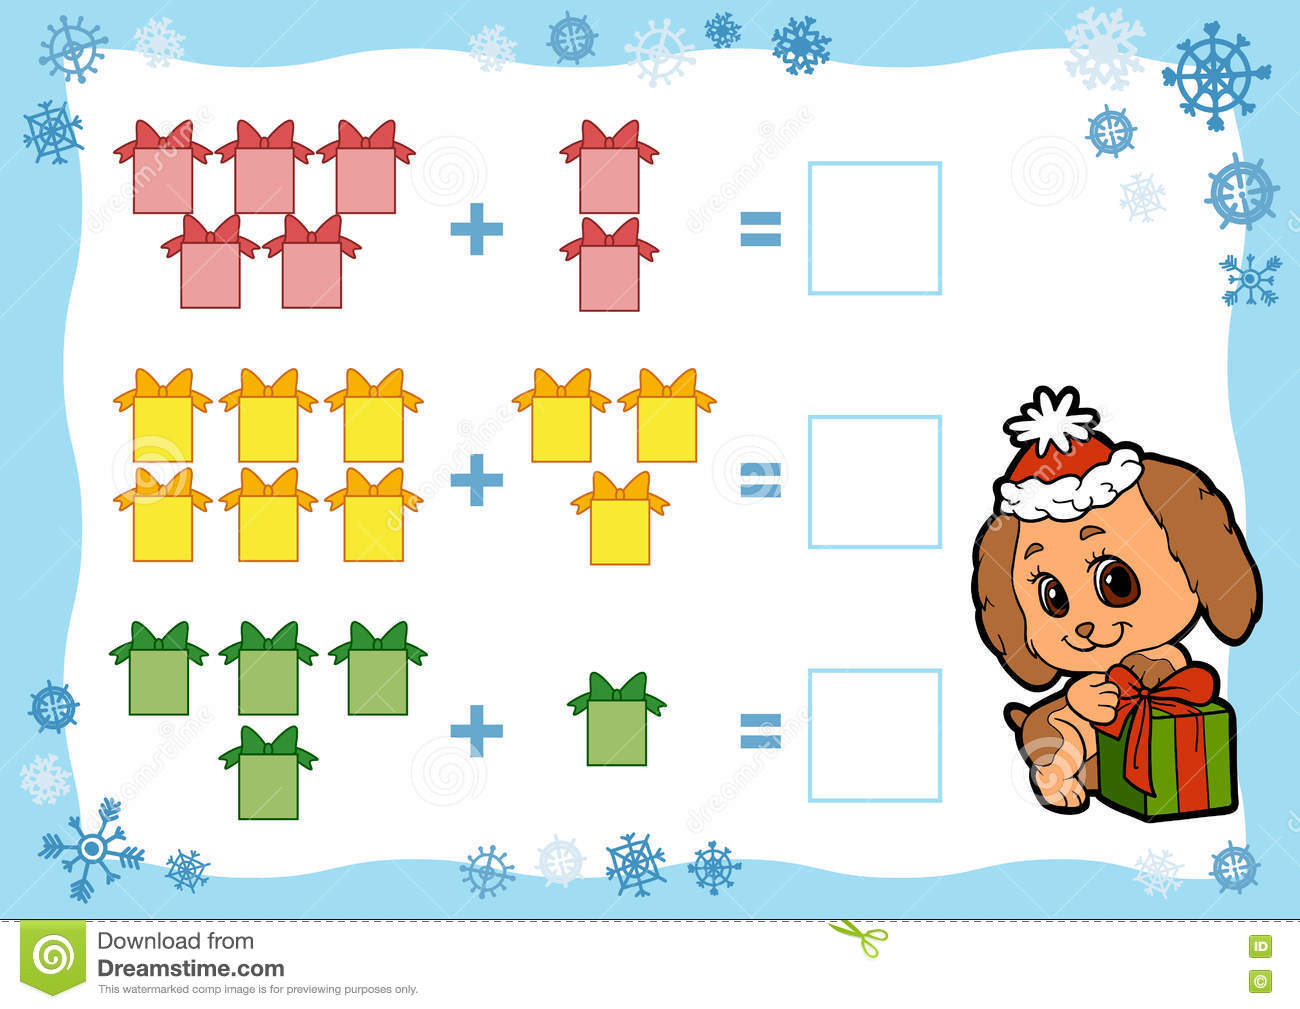 Counting Game For Children Addition Worksheets Christmas